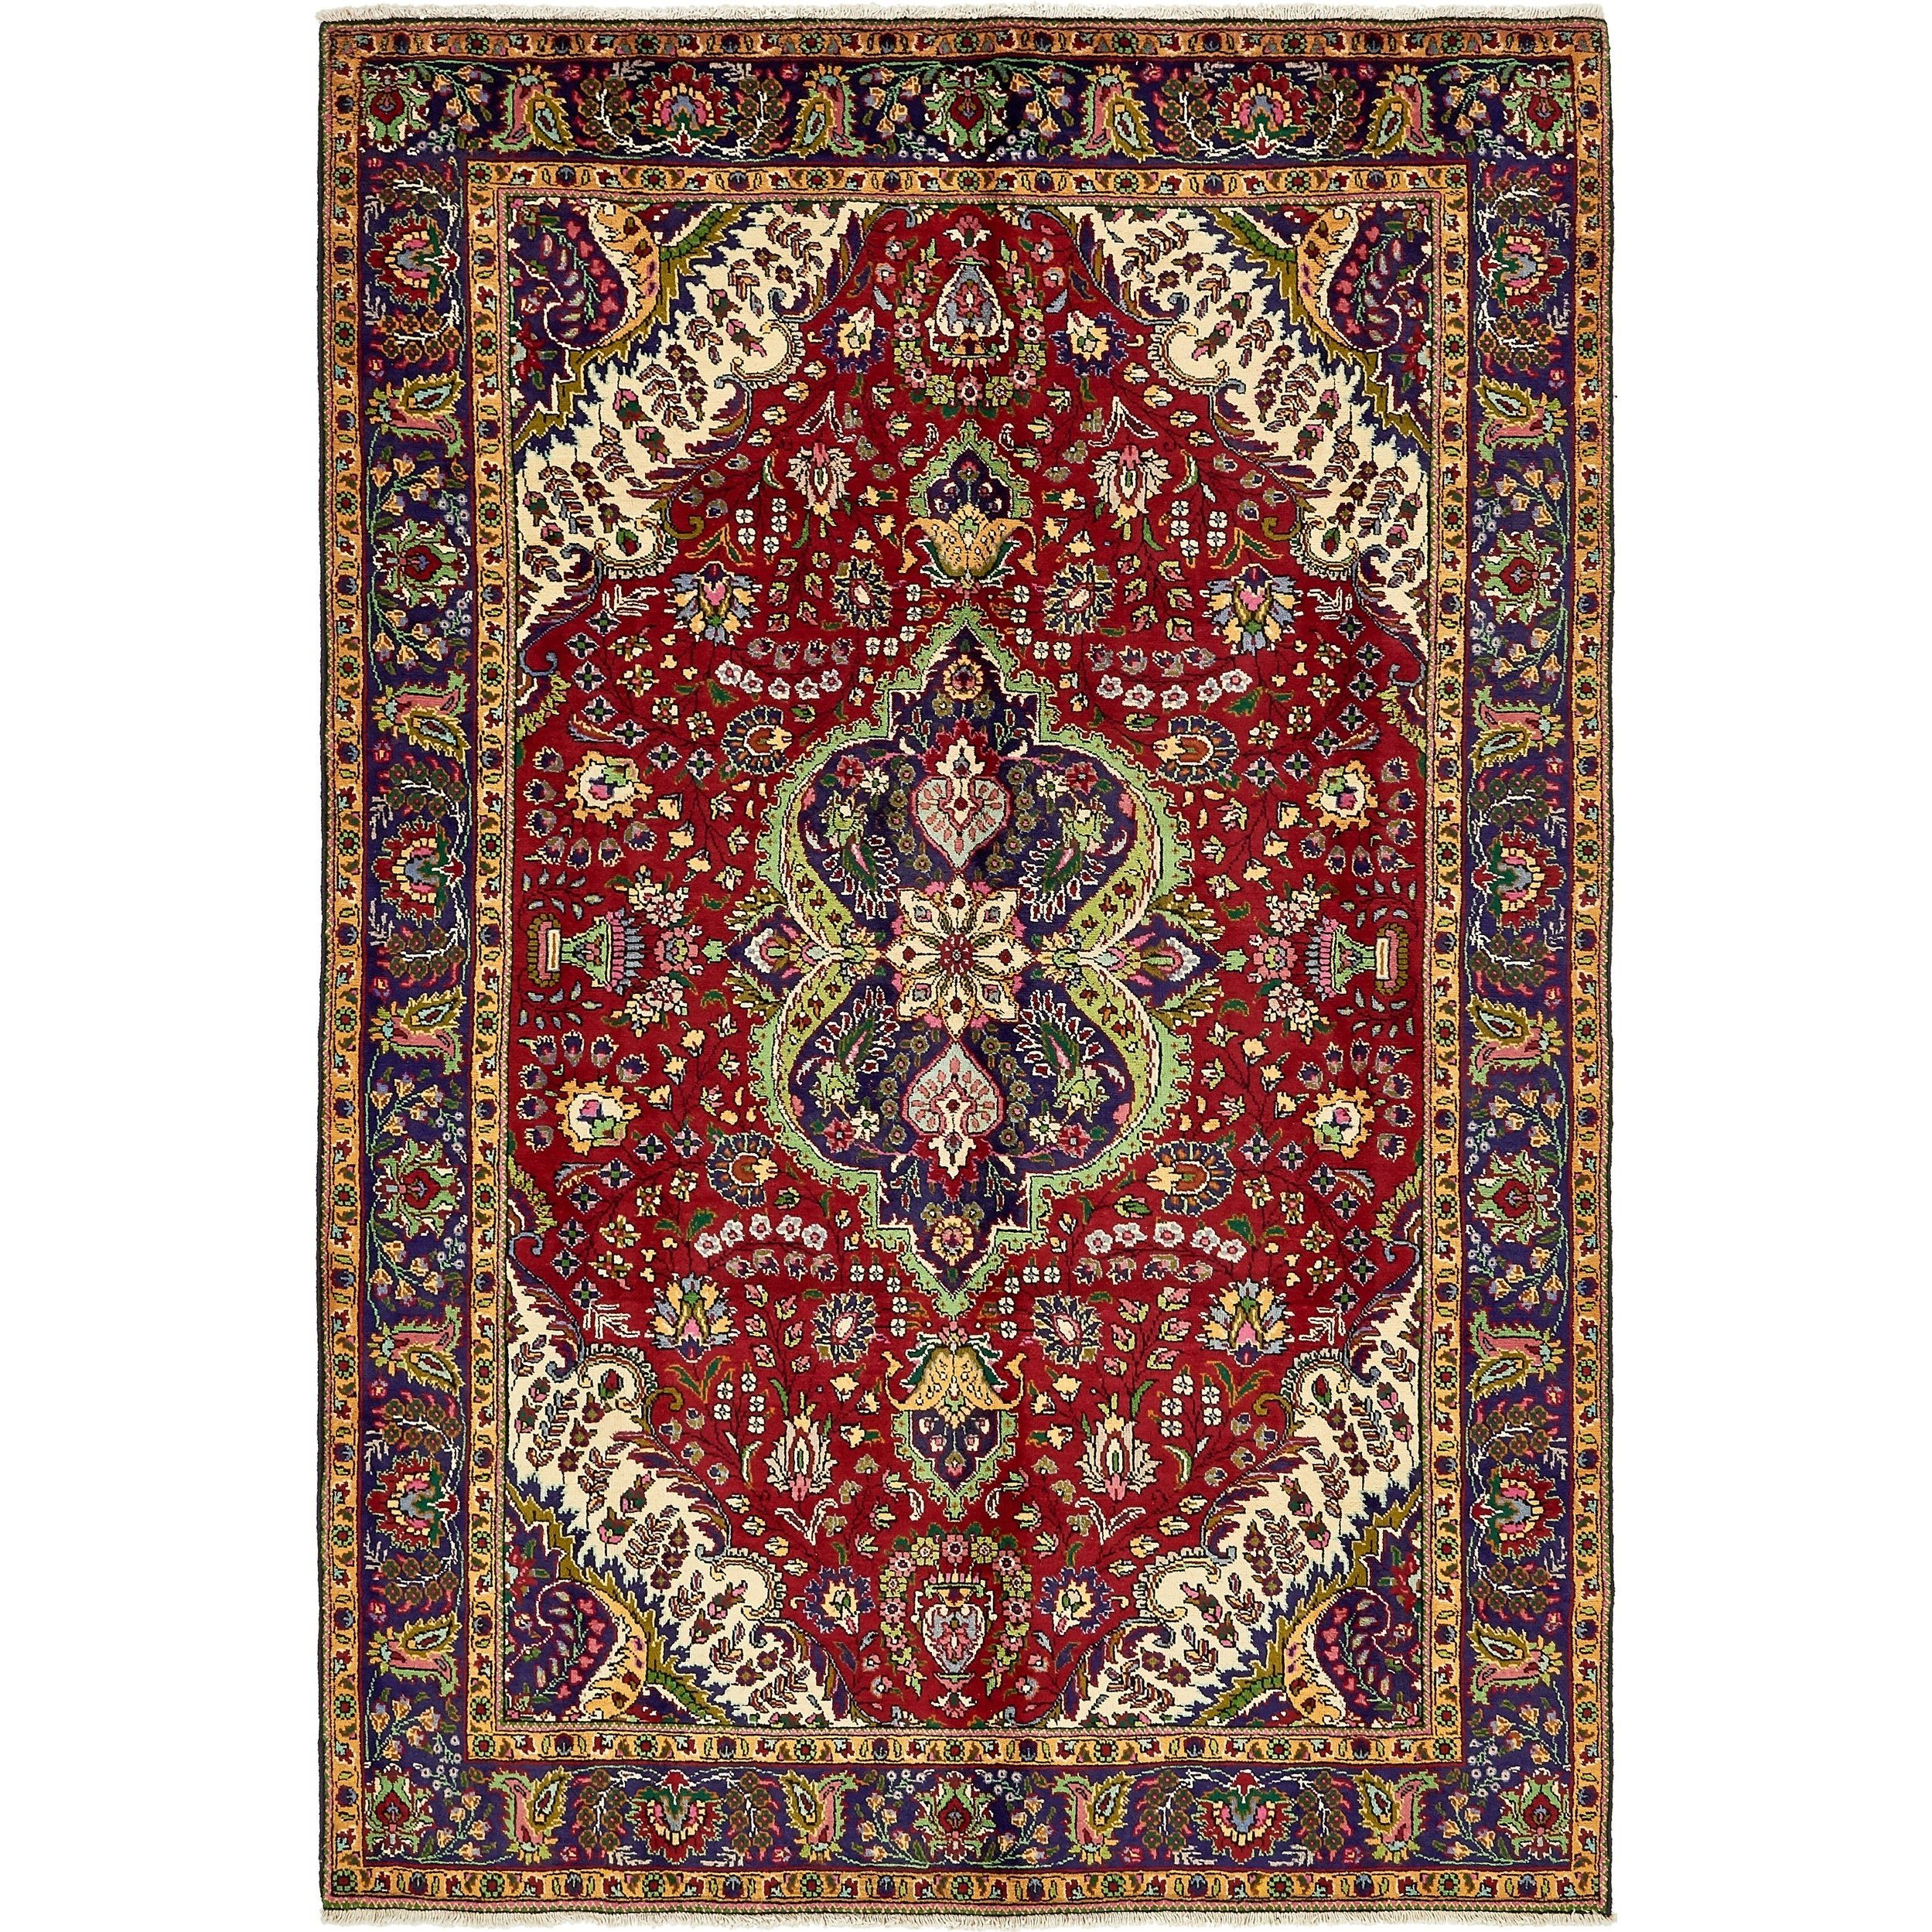 Refurbished Hand Knotted Tabriz Wool Area Rug 6 9 X 10 Red